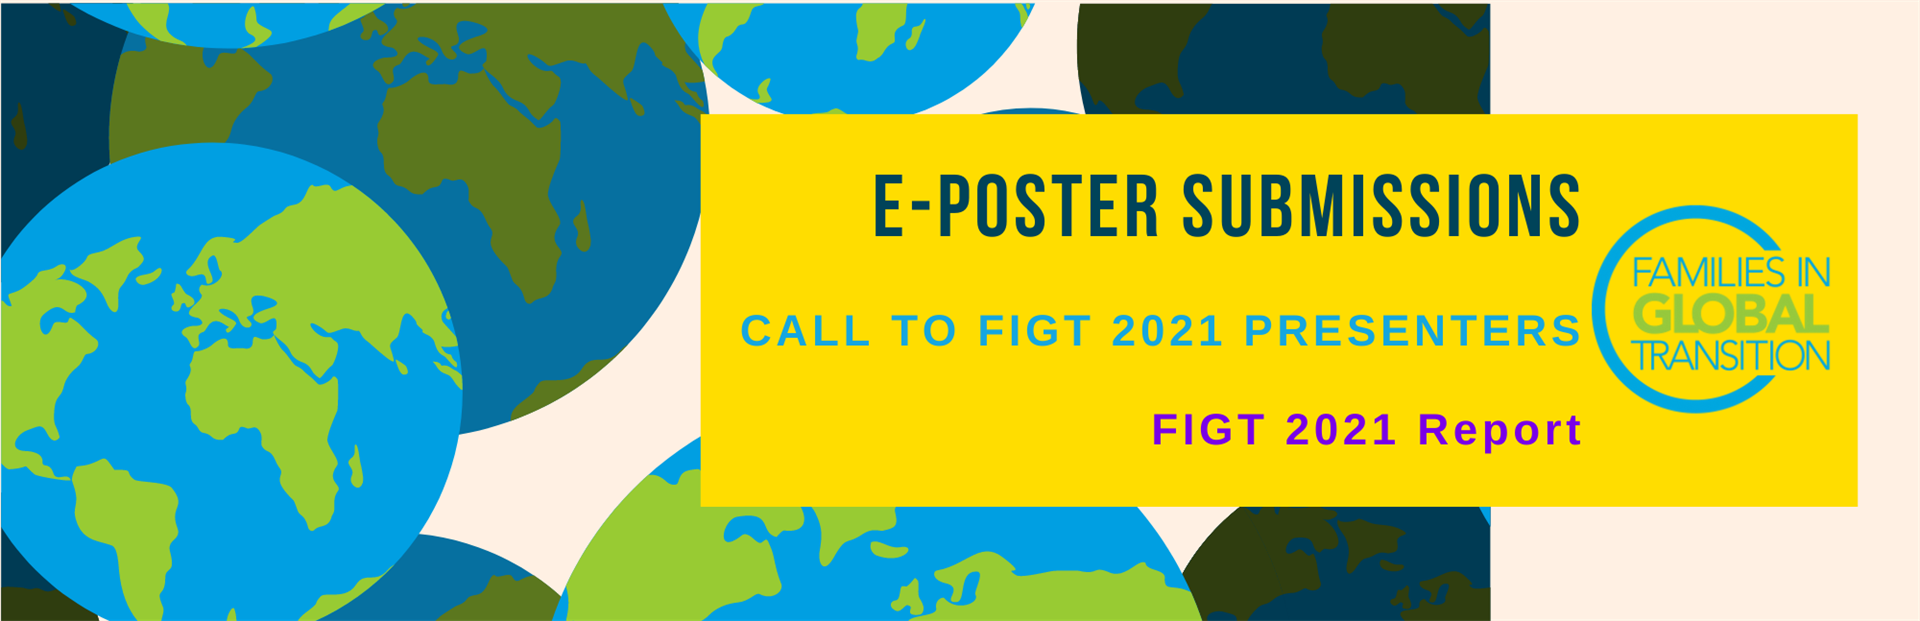 call for e-poster submissions from FIGT2021 presenters